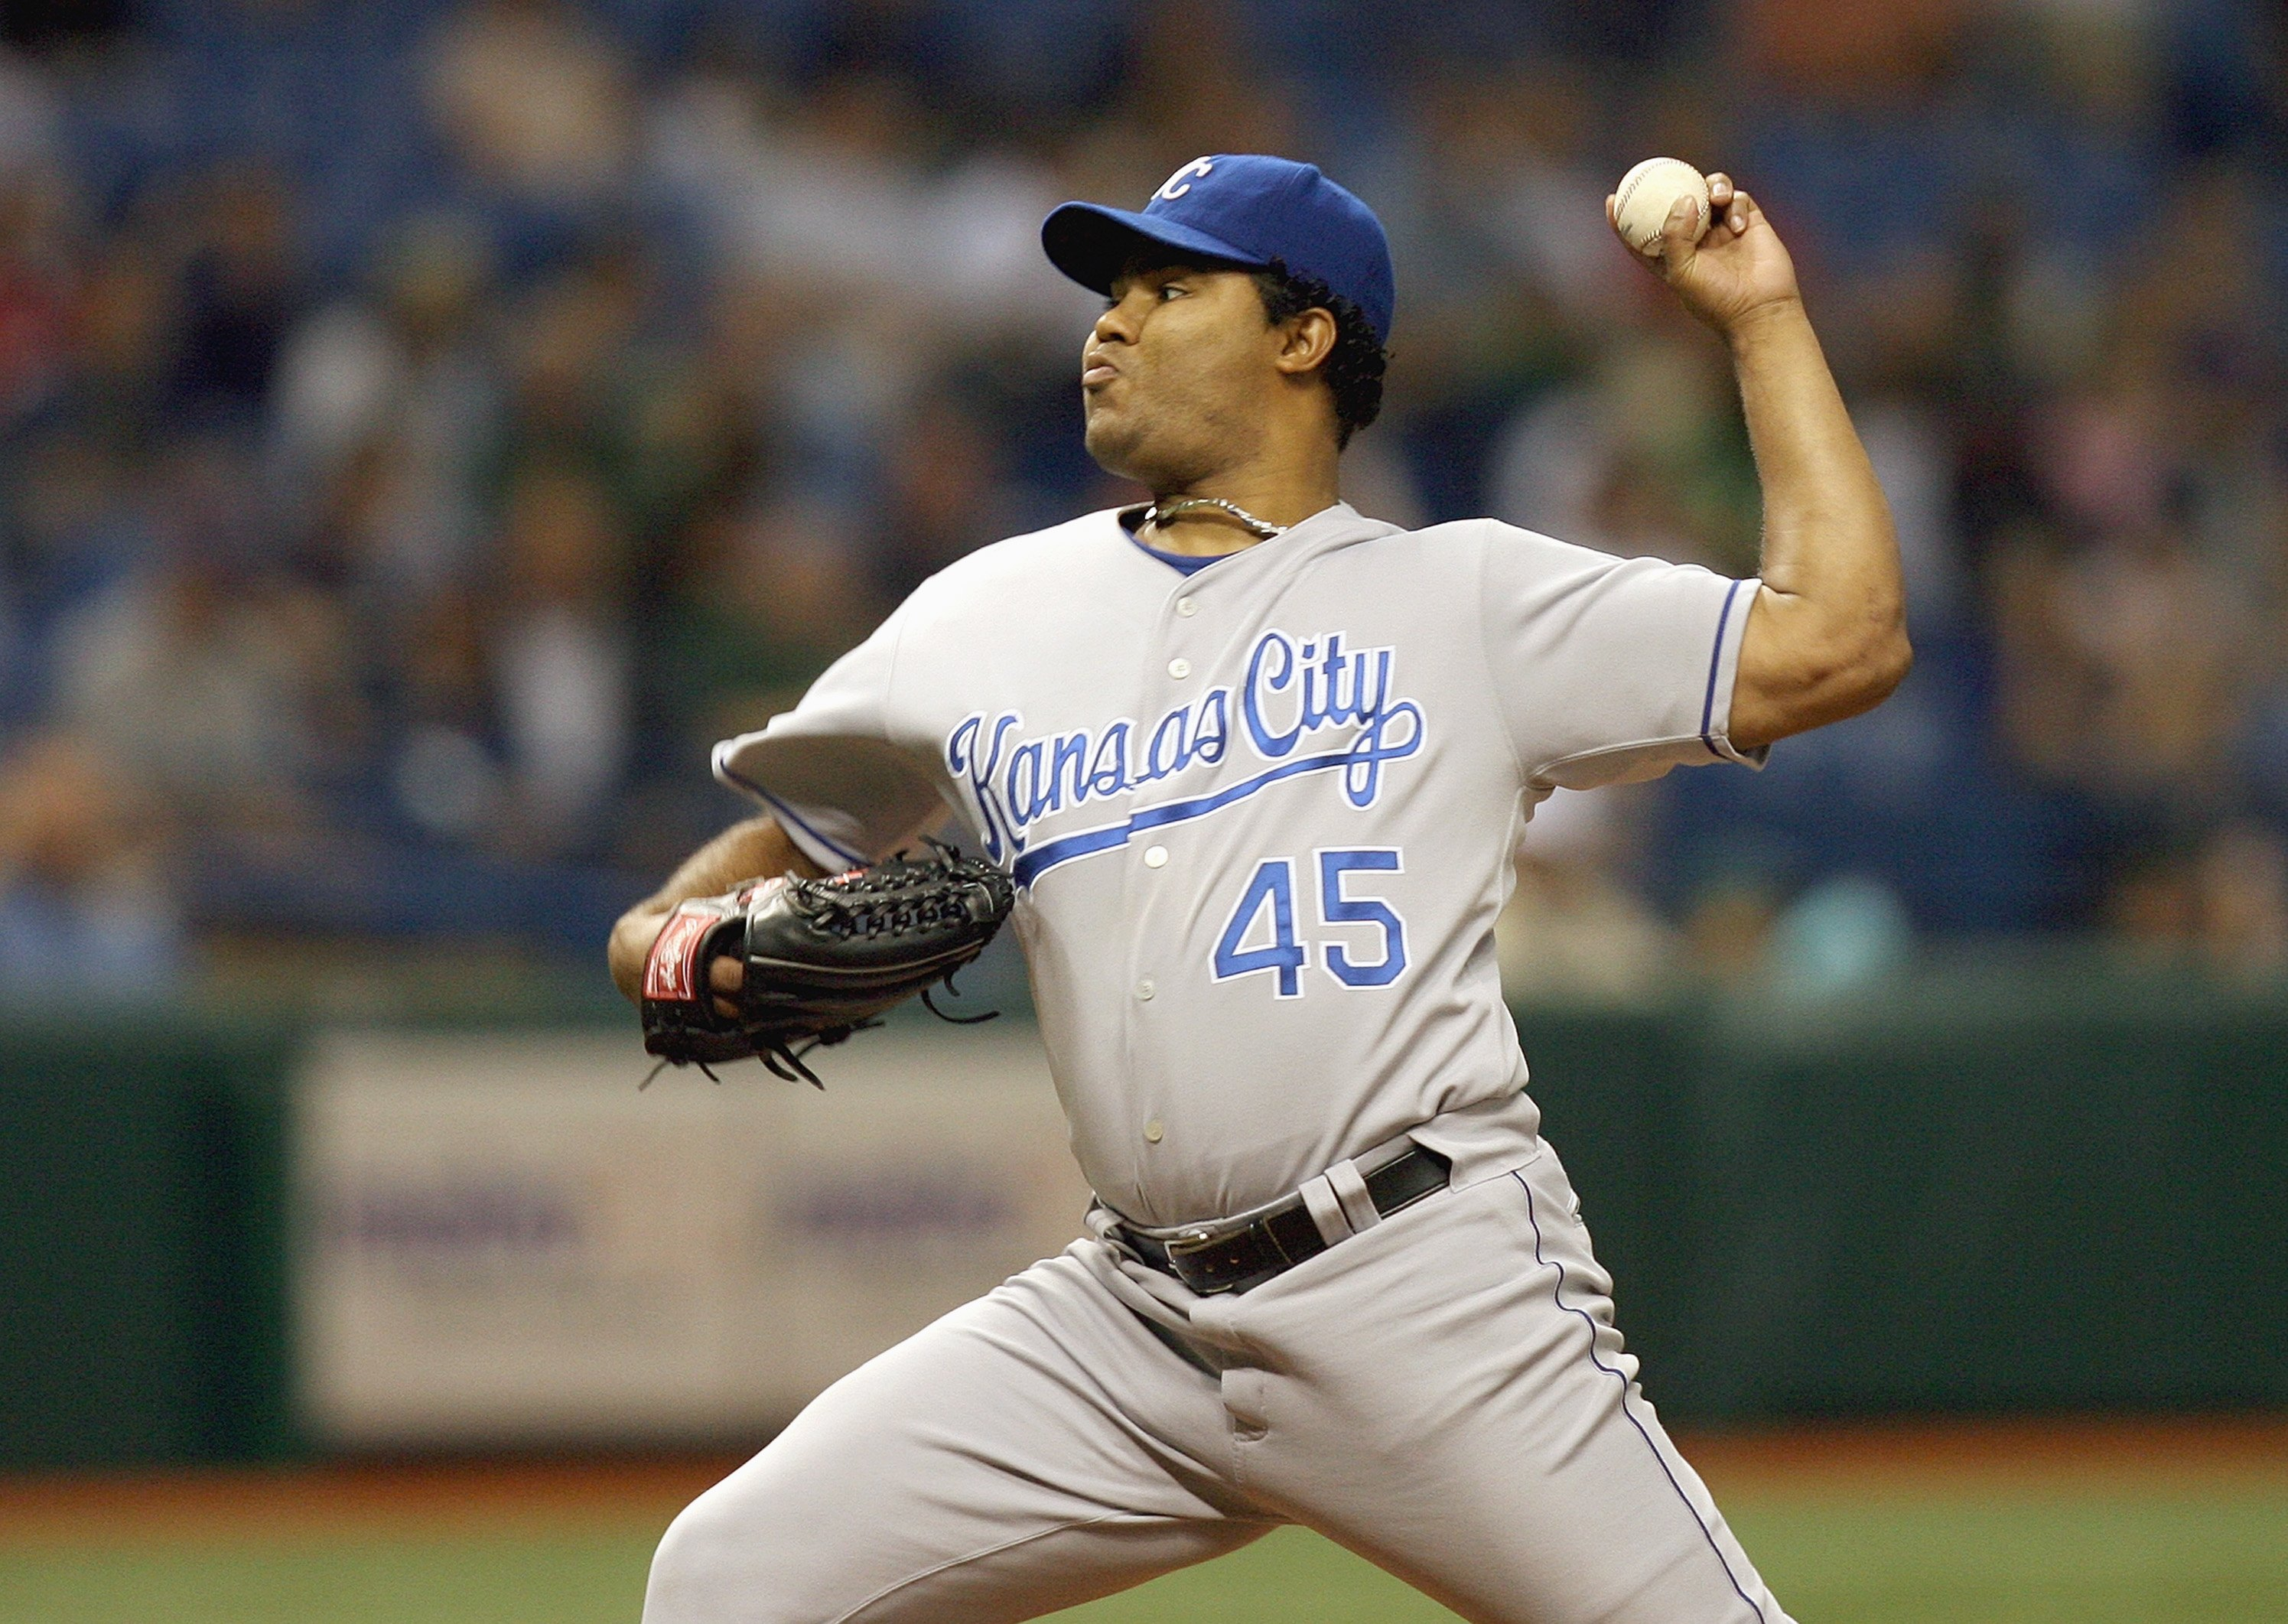 TAMPA, FL - JUNE 02: Odalis Perez #45 of the Kansas City Royals pitches in the first inning against the Tampa Bay Devil Rays at Tropicana Field on June 2, 2007 in Tampa, Florida. (Photo by Doug Benc/Getty Images)